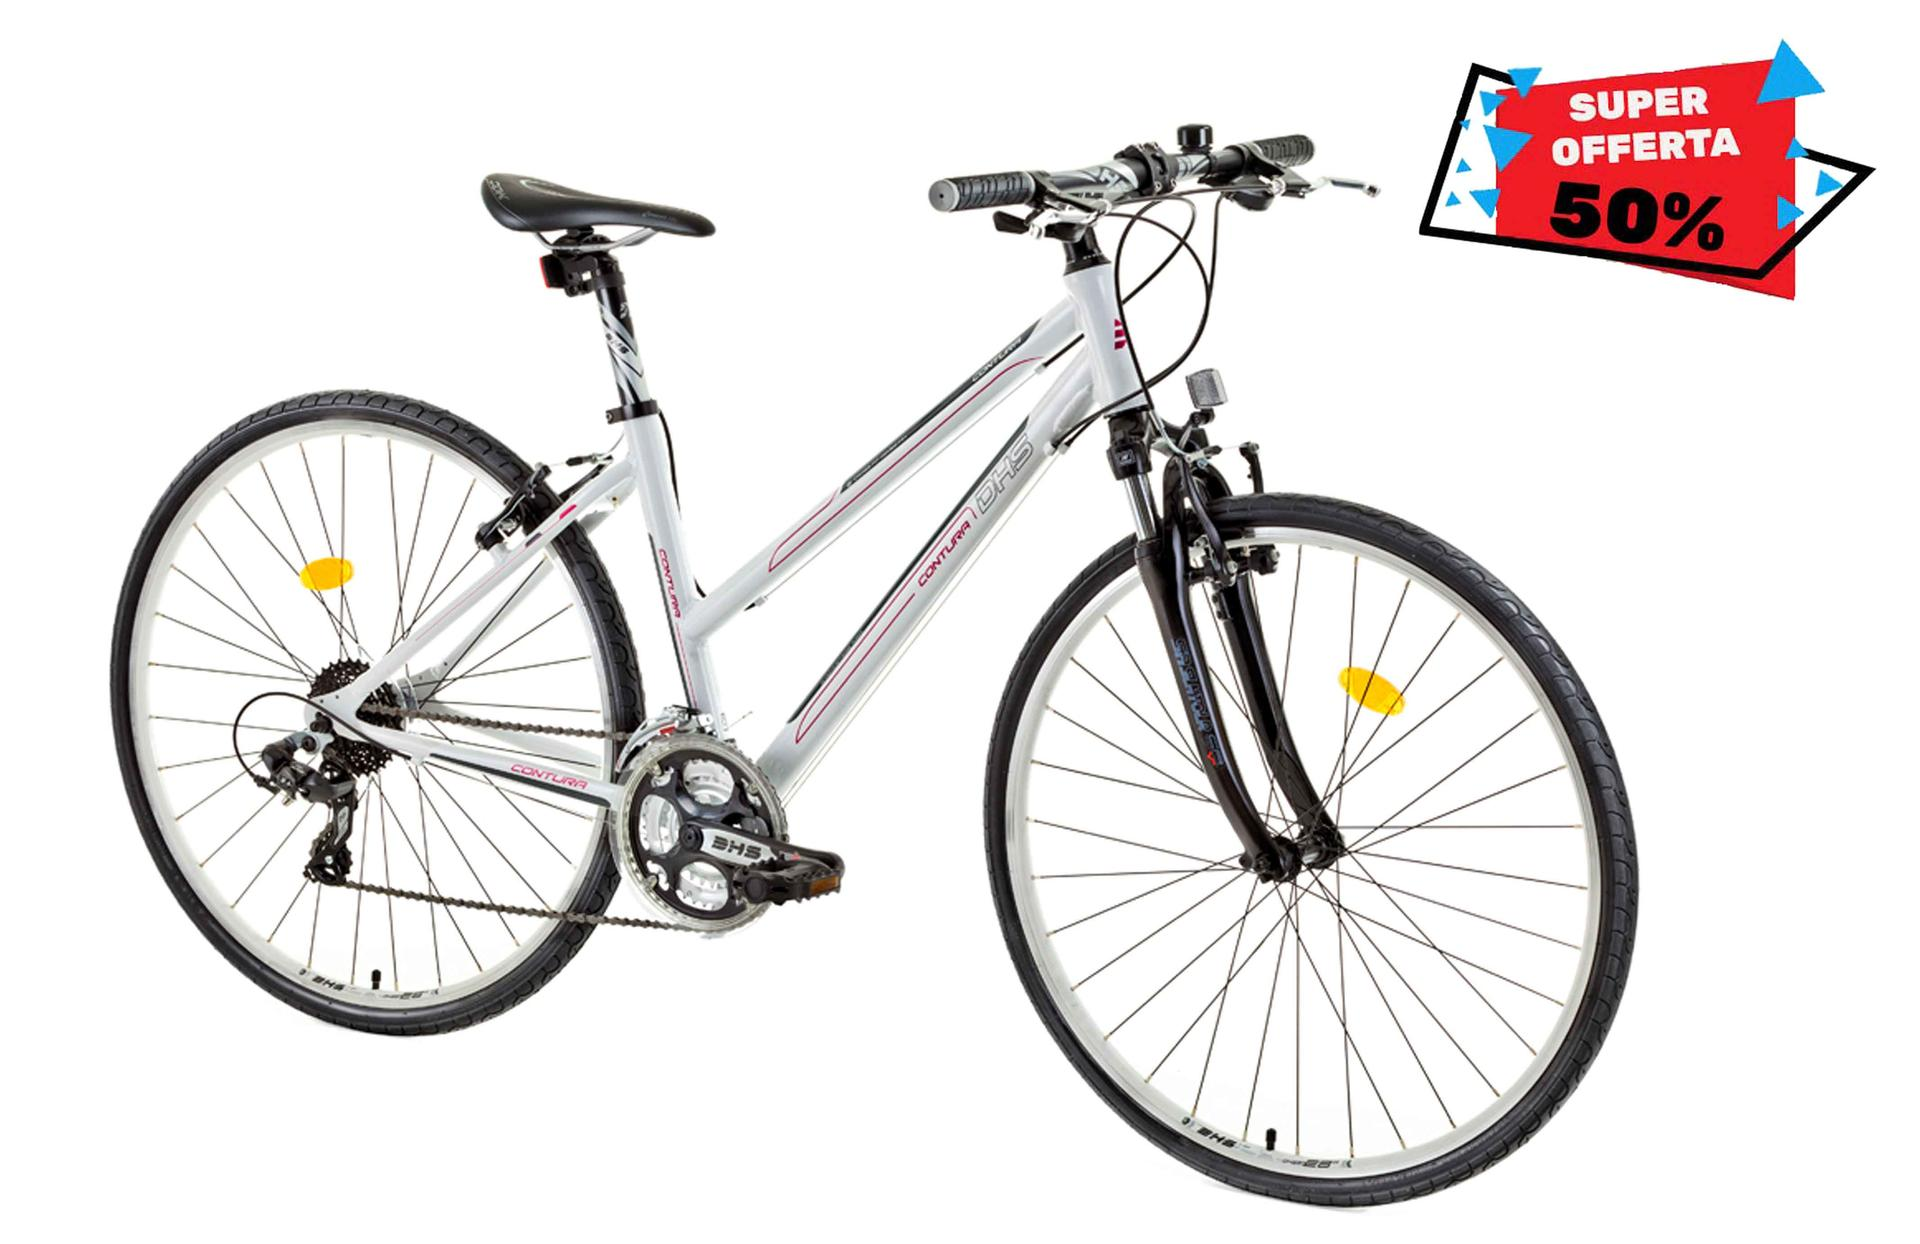 Bicicletta donna da cross DHS 2866 White 495mm